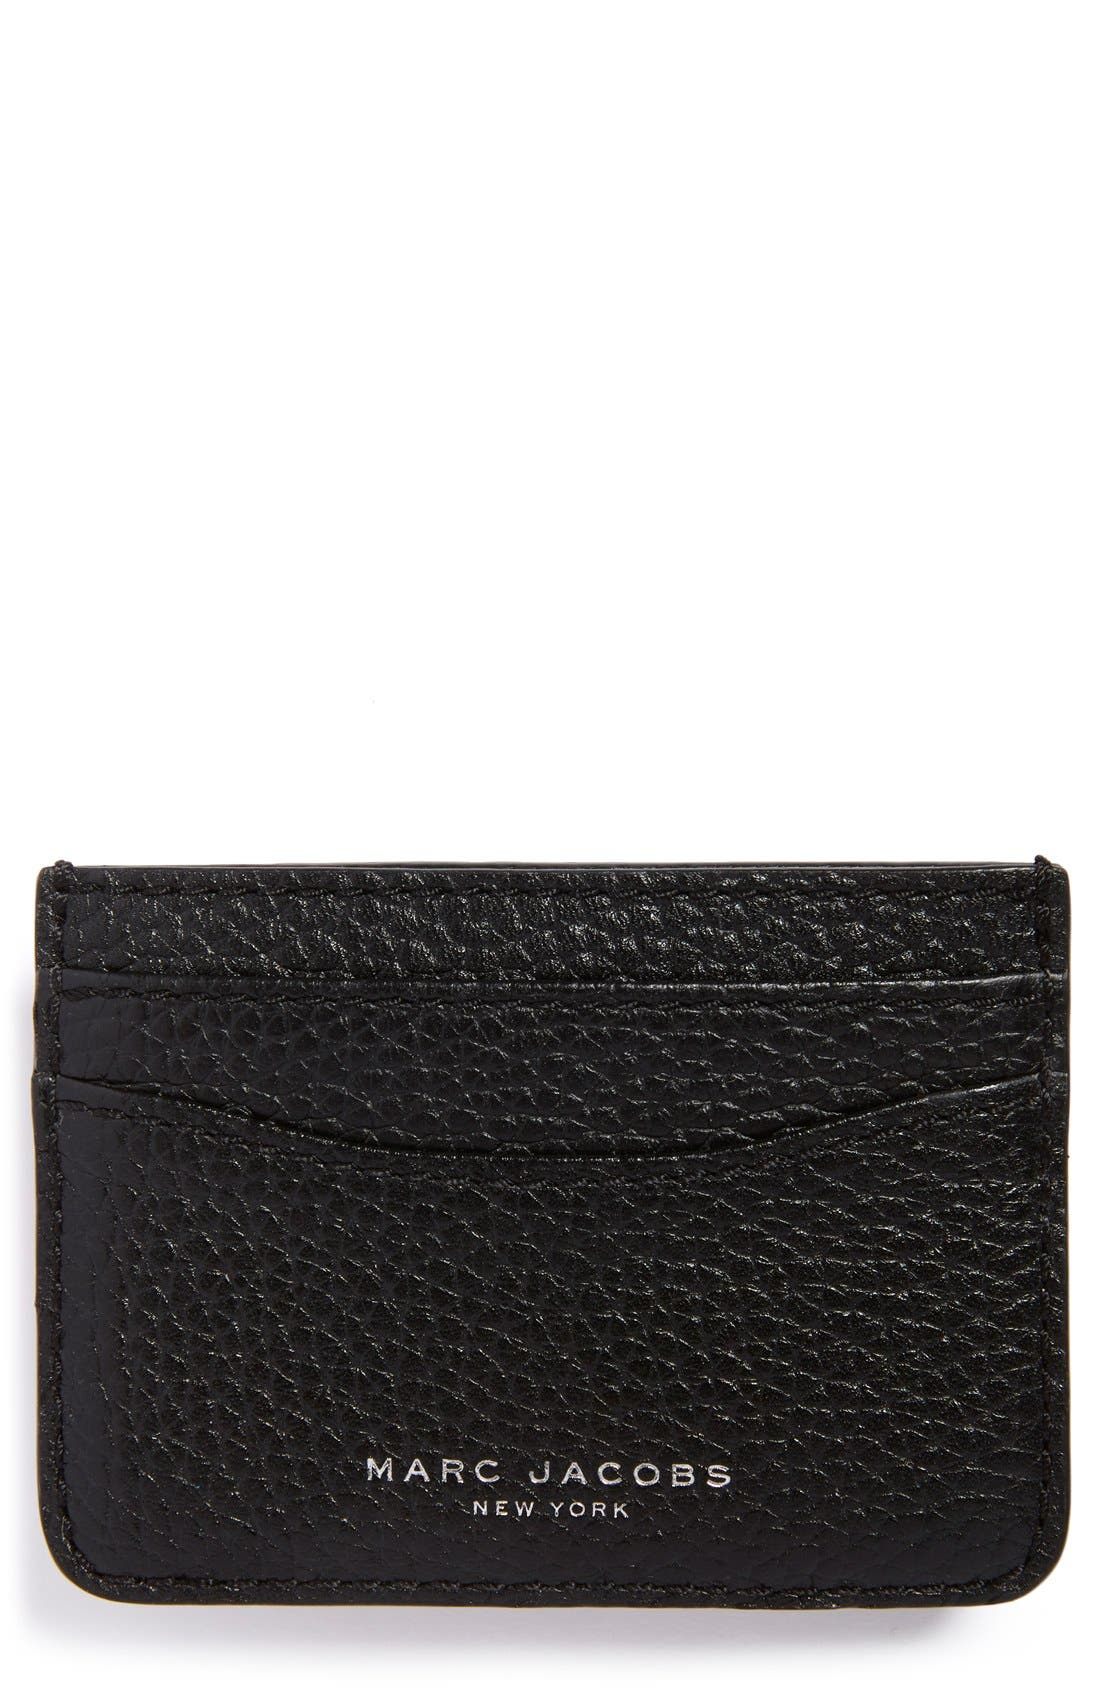 Main Image - MARC JACOBS 'Gotham' Leather Card Case